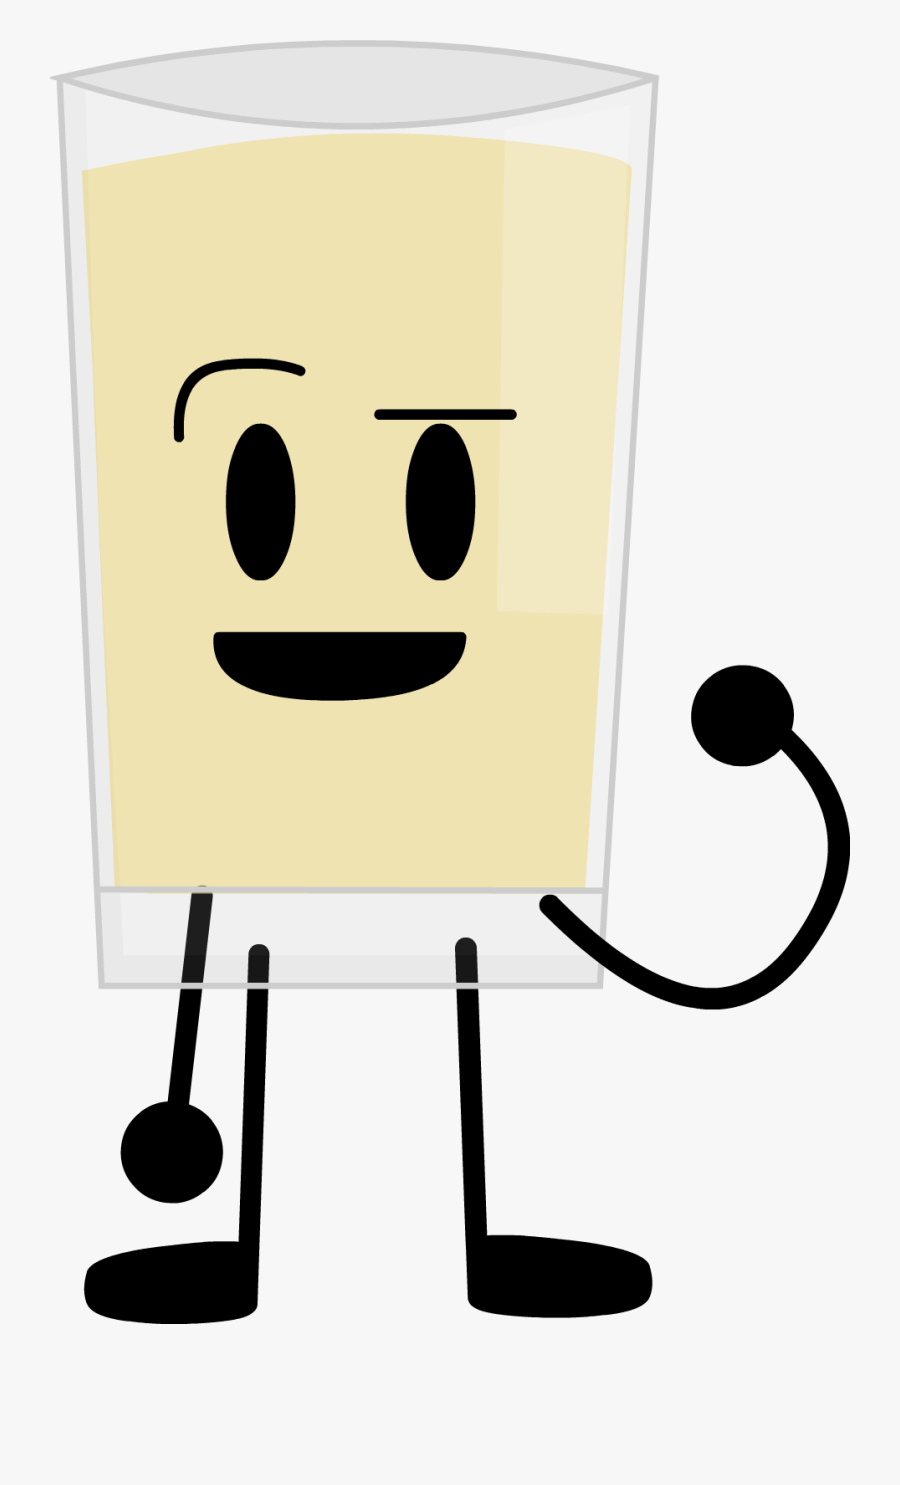 The Anythingless Objecting Everythingy Wiki, Transparent Clipart